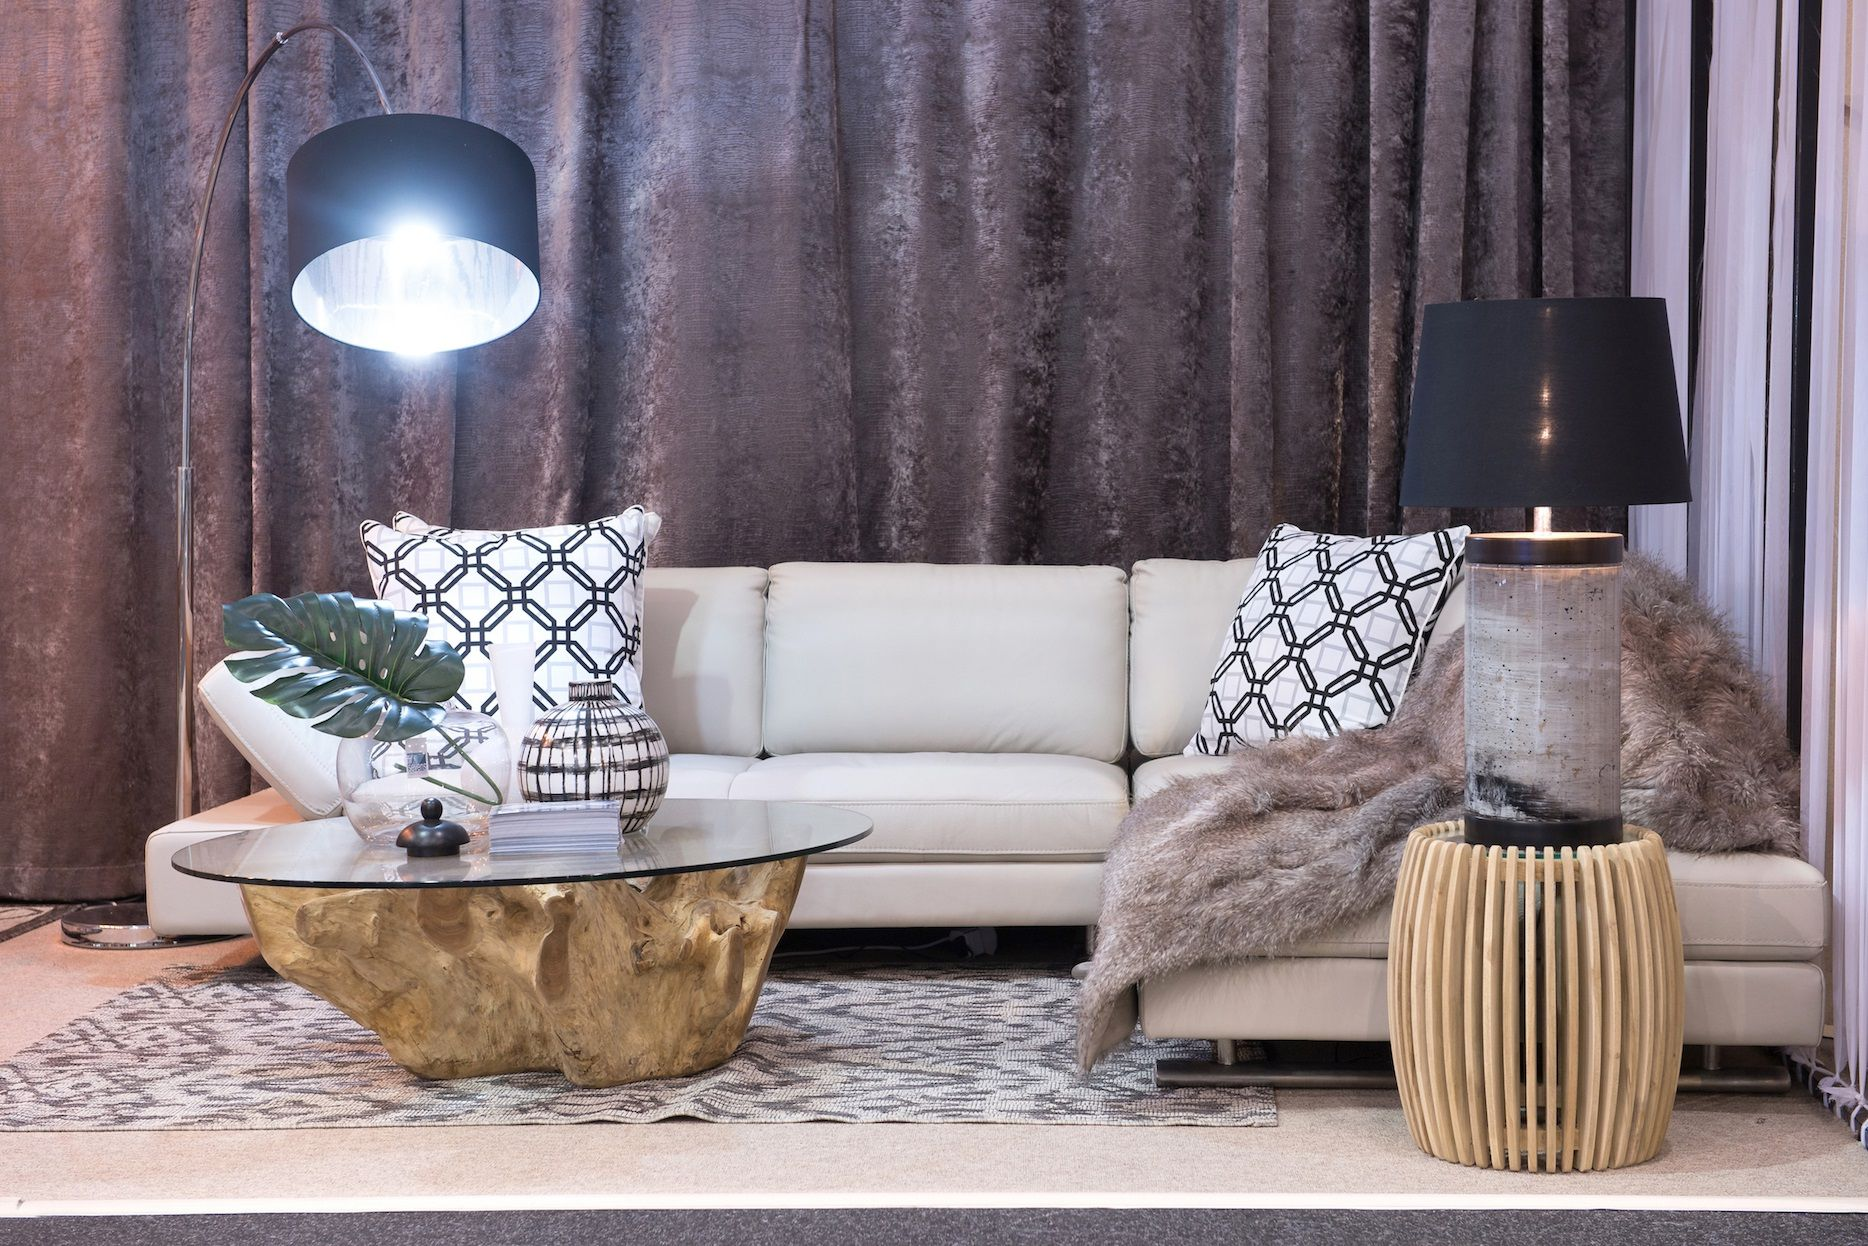 Find Décor Inspiration At Upcoming East Coast Radio House & Garden Show photo